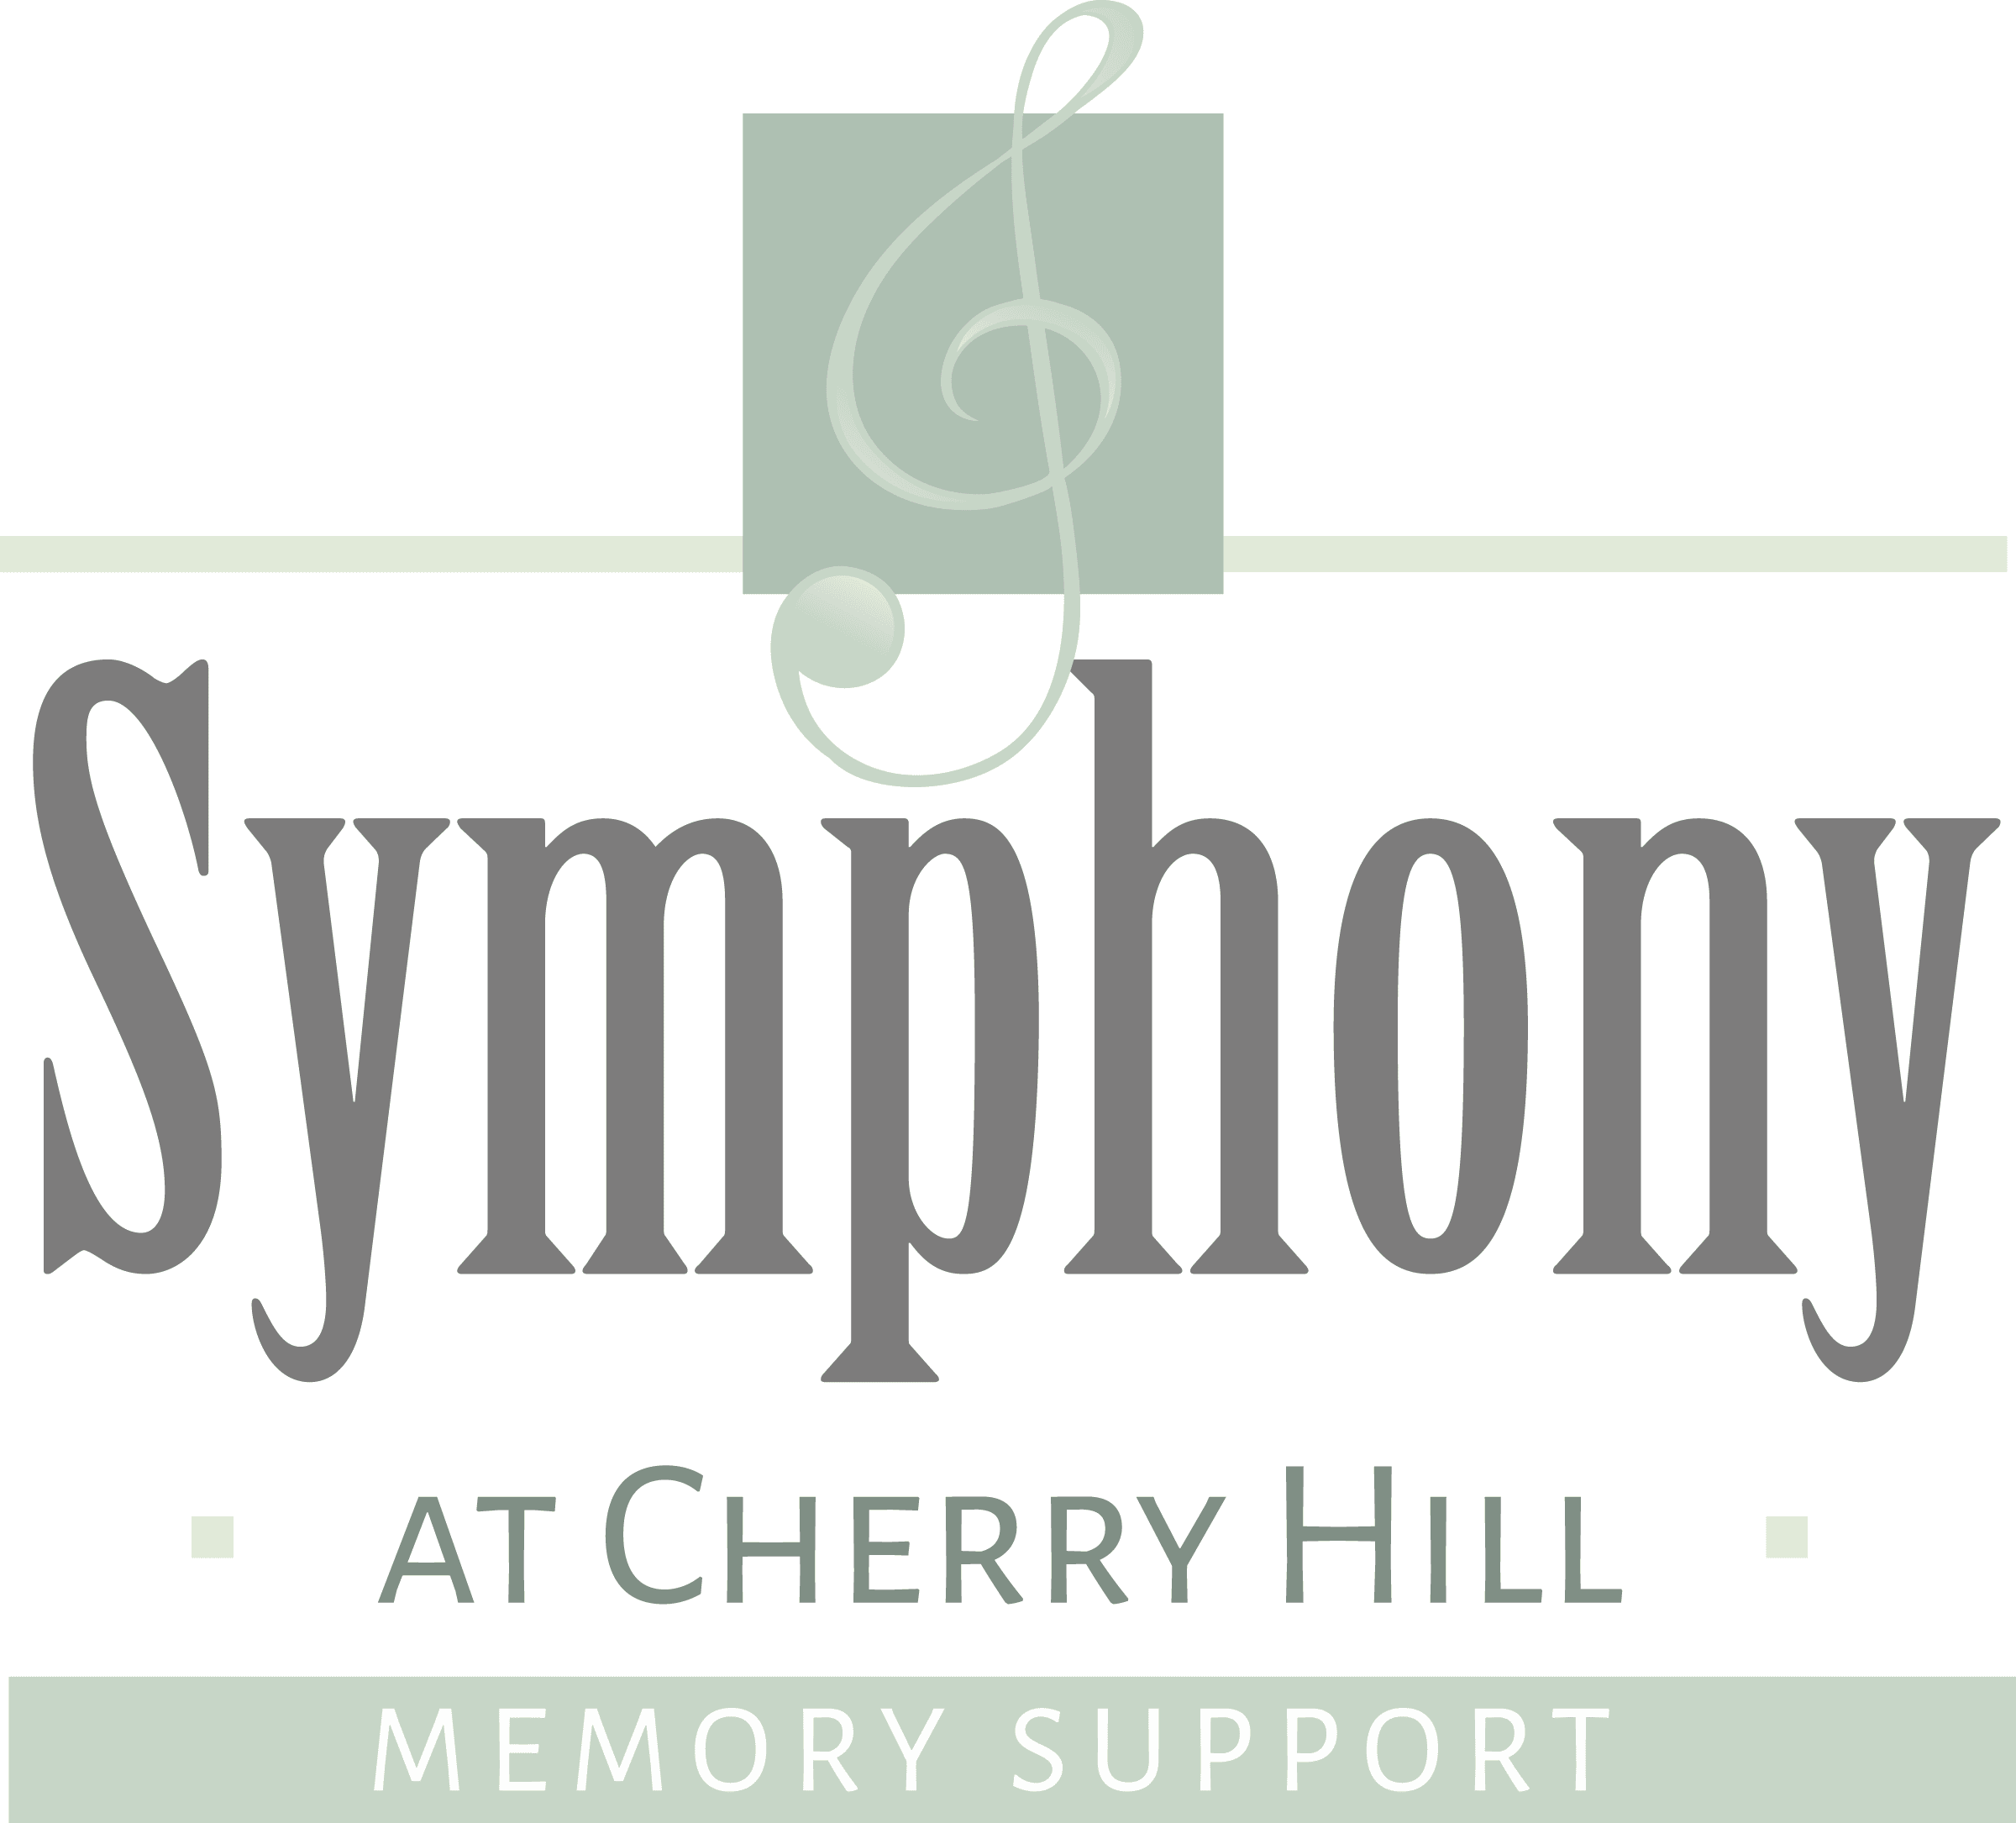 Symphony at Cherry Hill